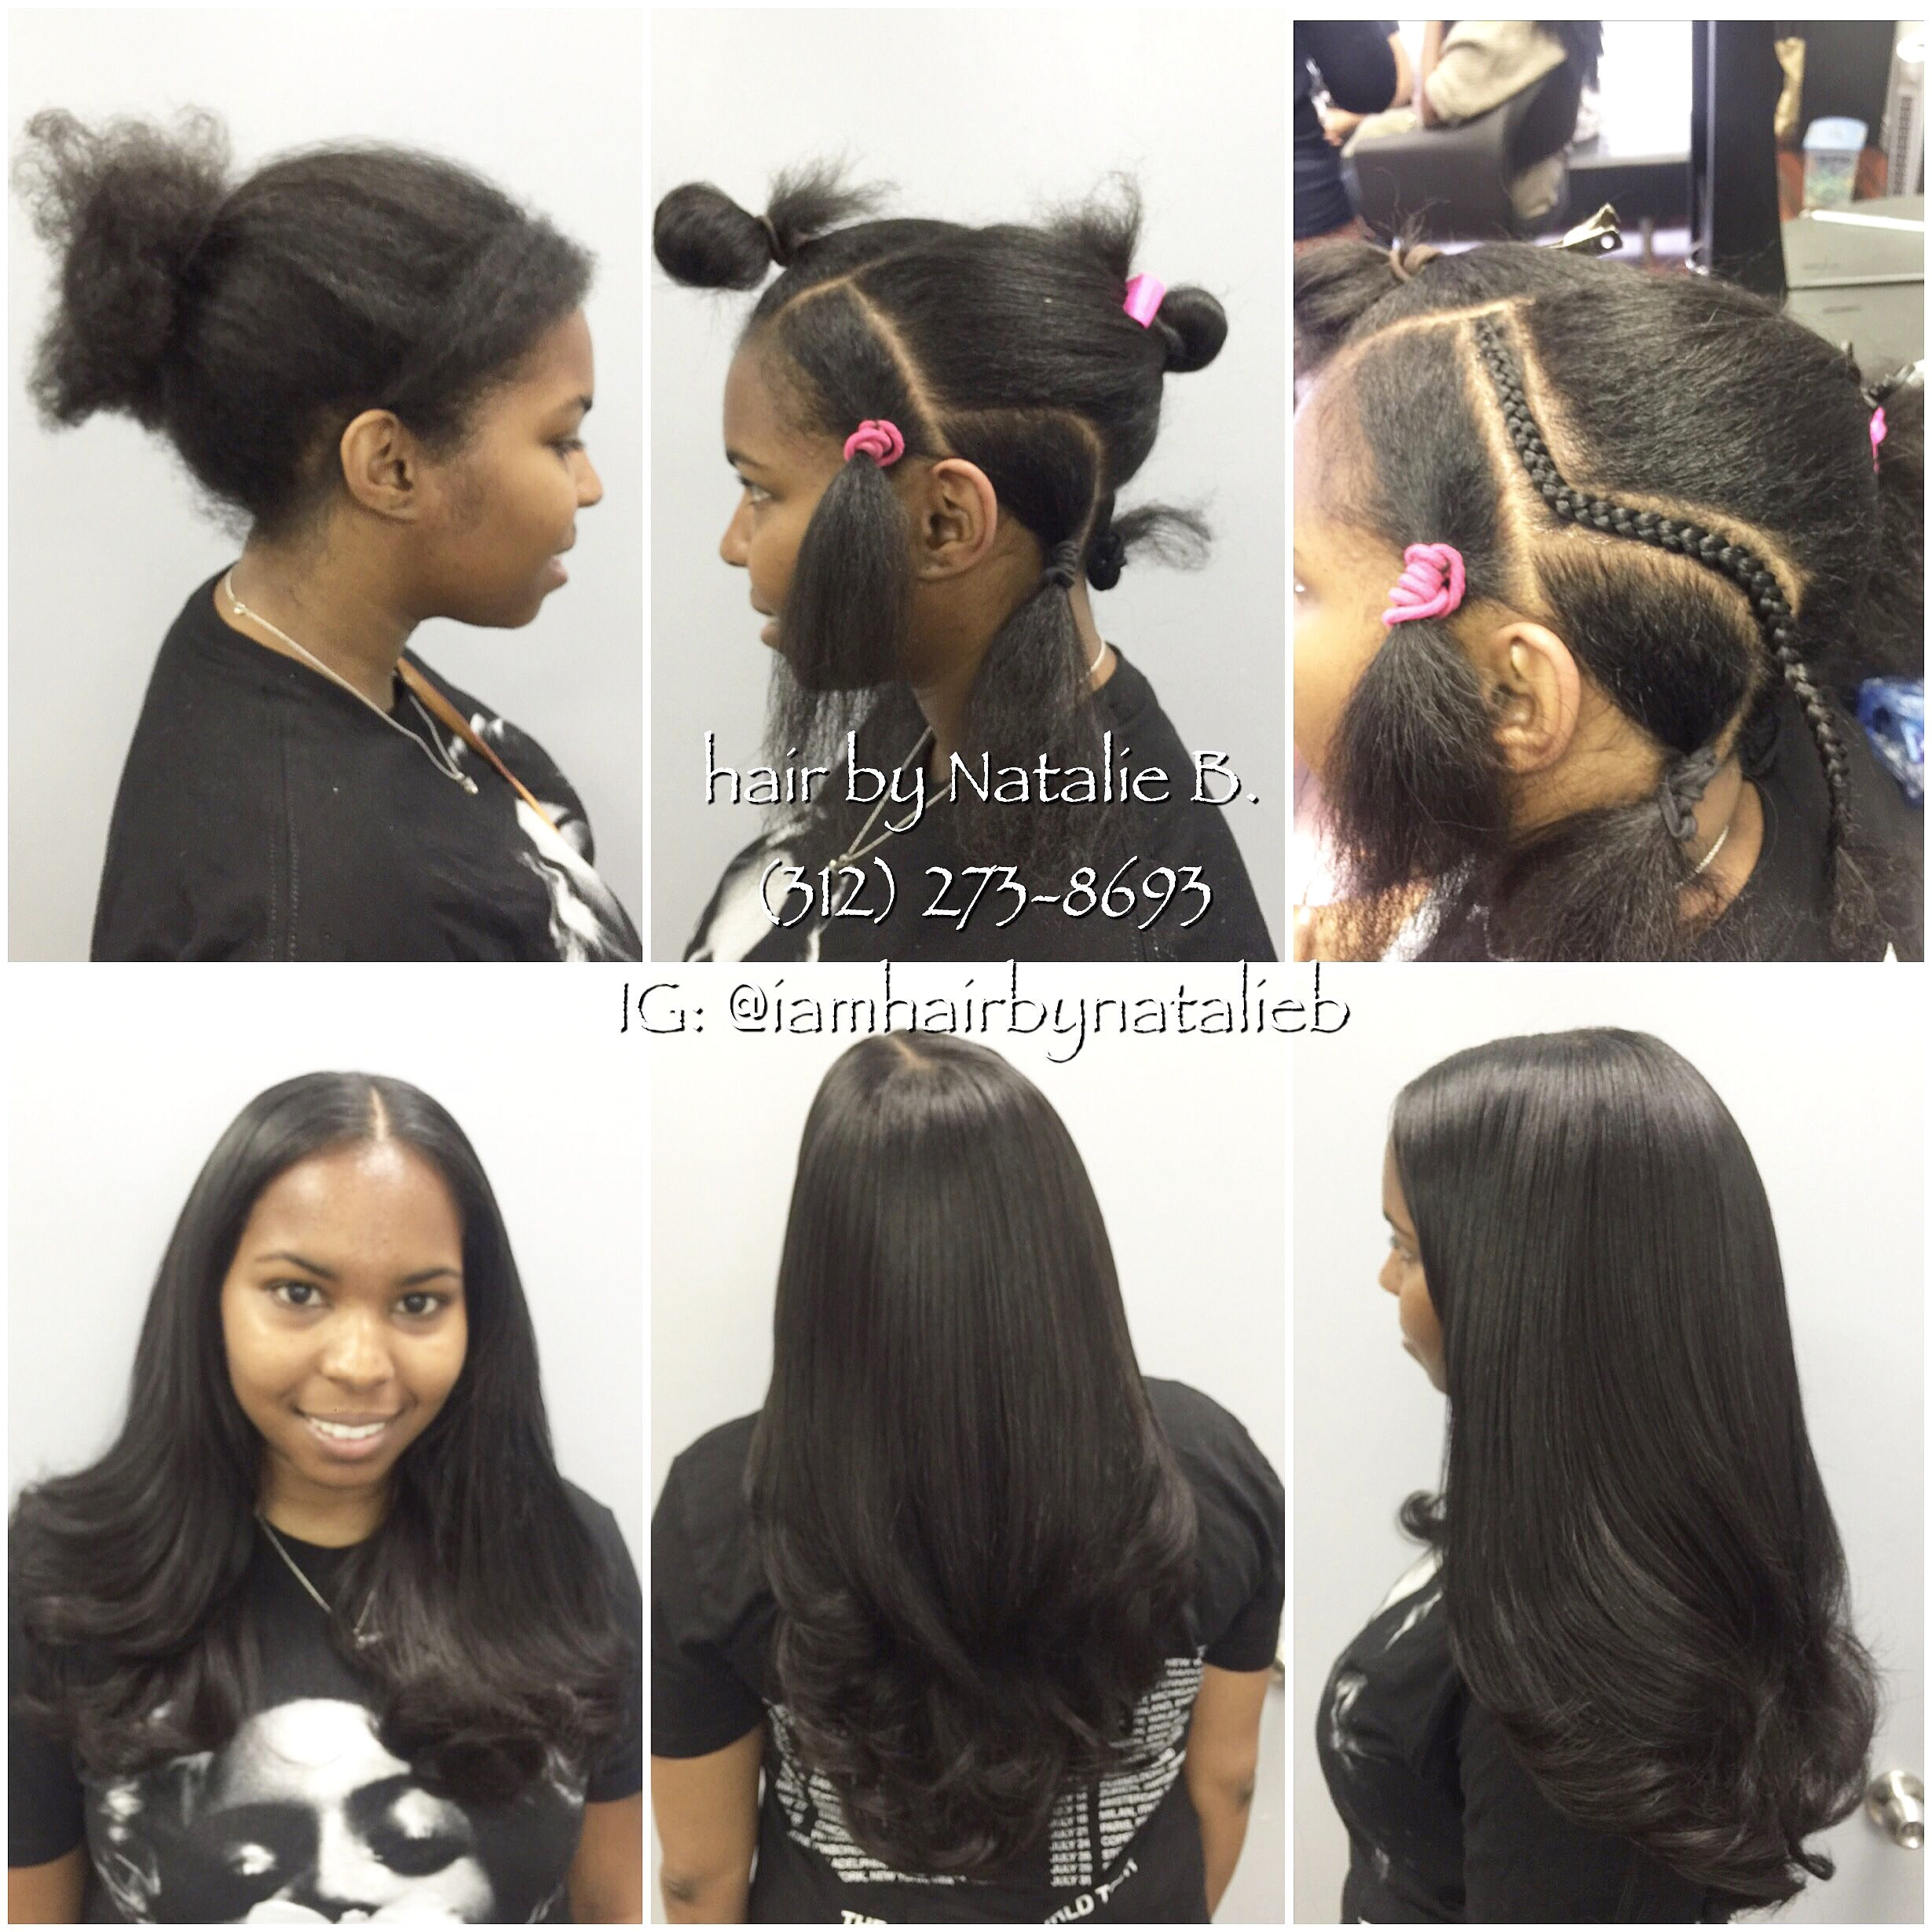 Natural Looking Sew In Hair Weave by Natalie B Call or text me at 312 273 8693 to schedule your appointment • • • Flat Secure Foundation‼